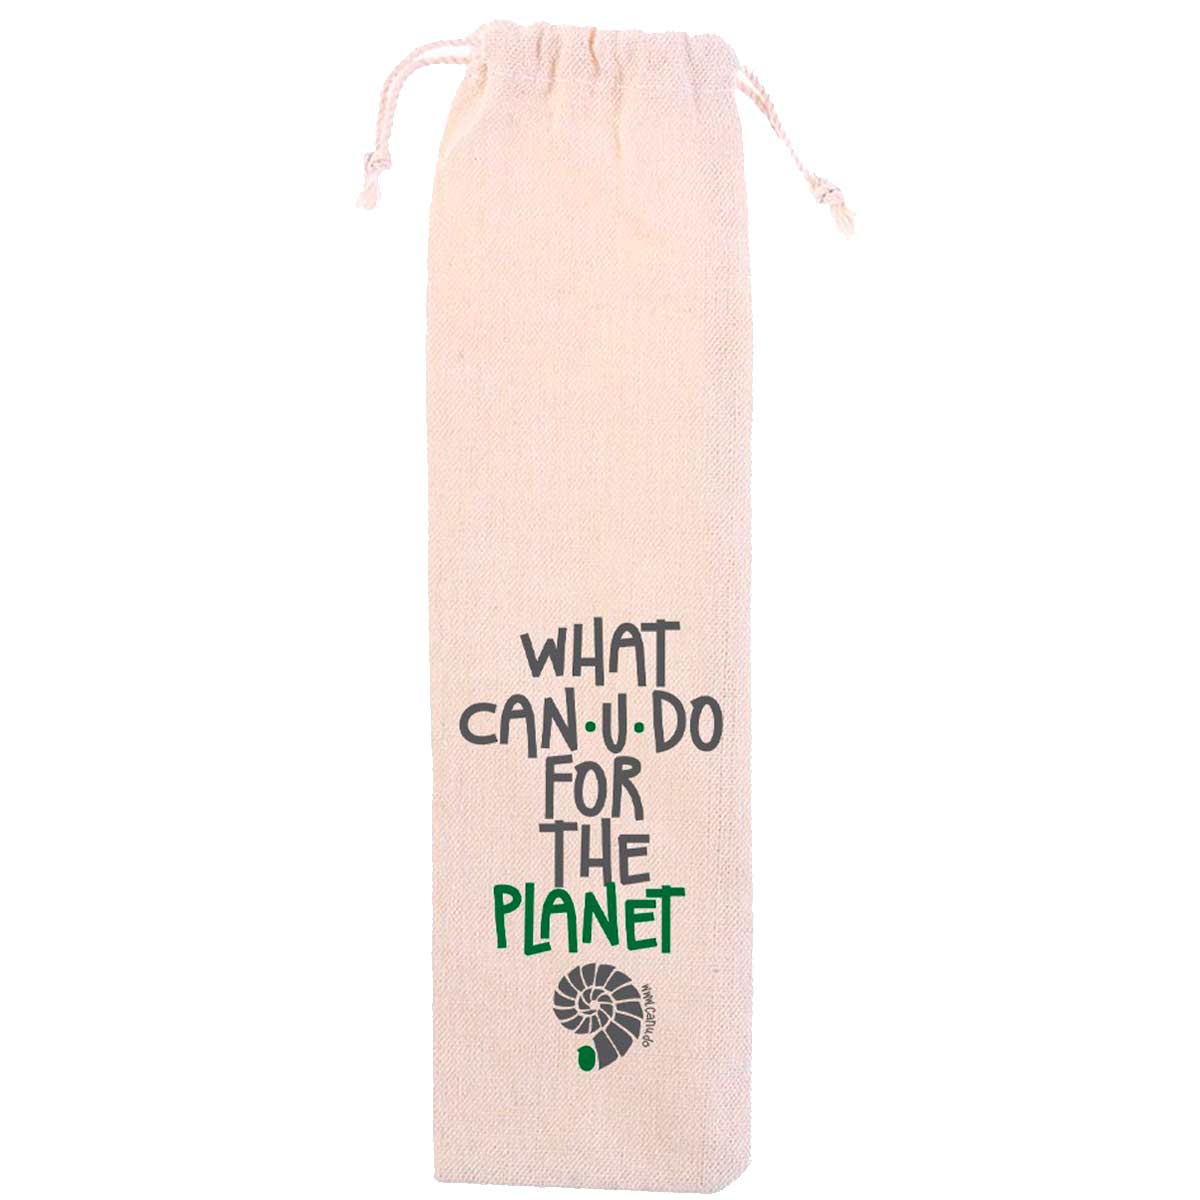 Ecobag Algodão Cru - What CAN.U.DO?